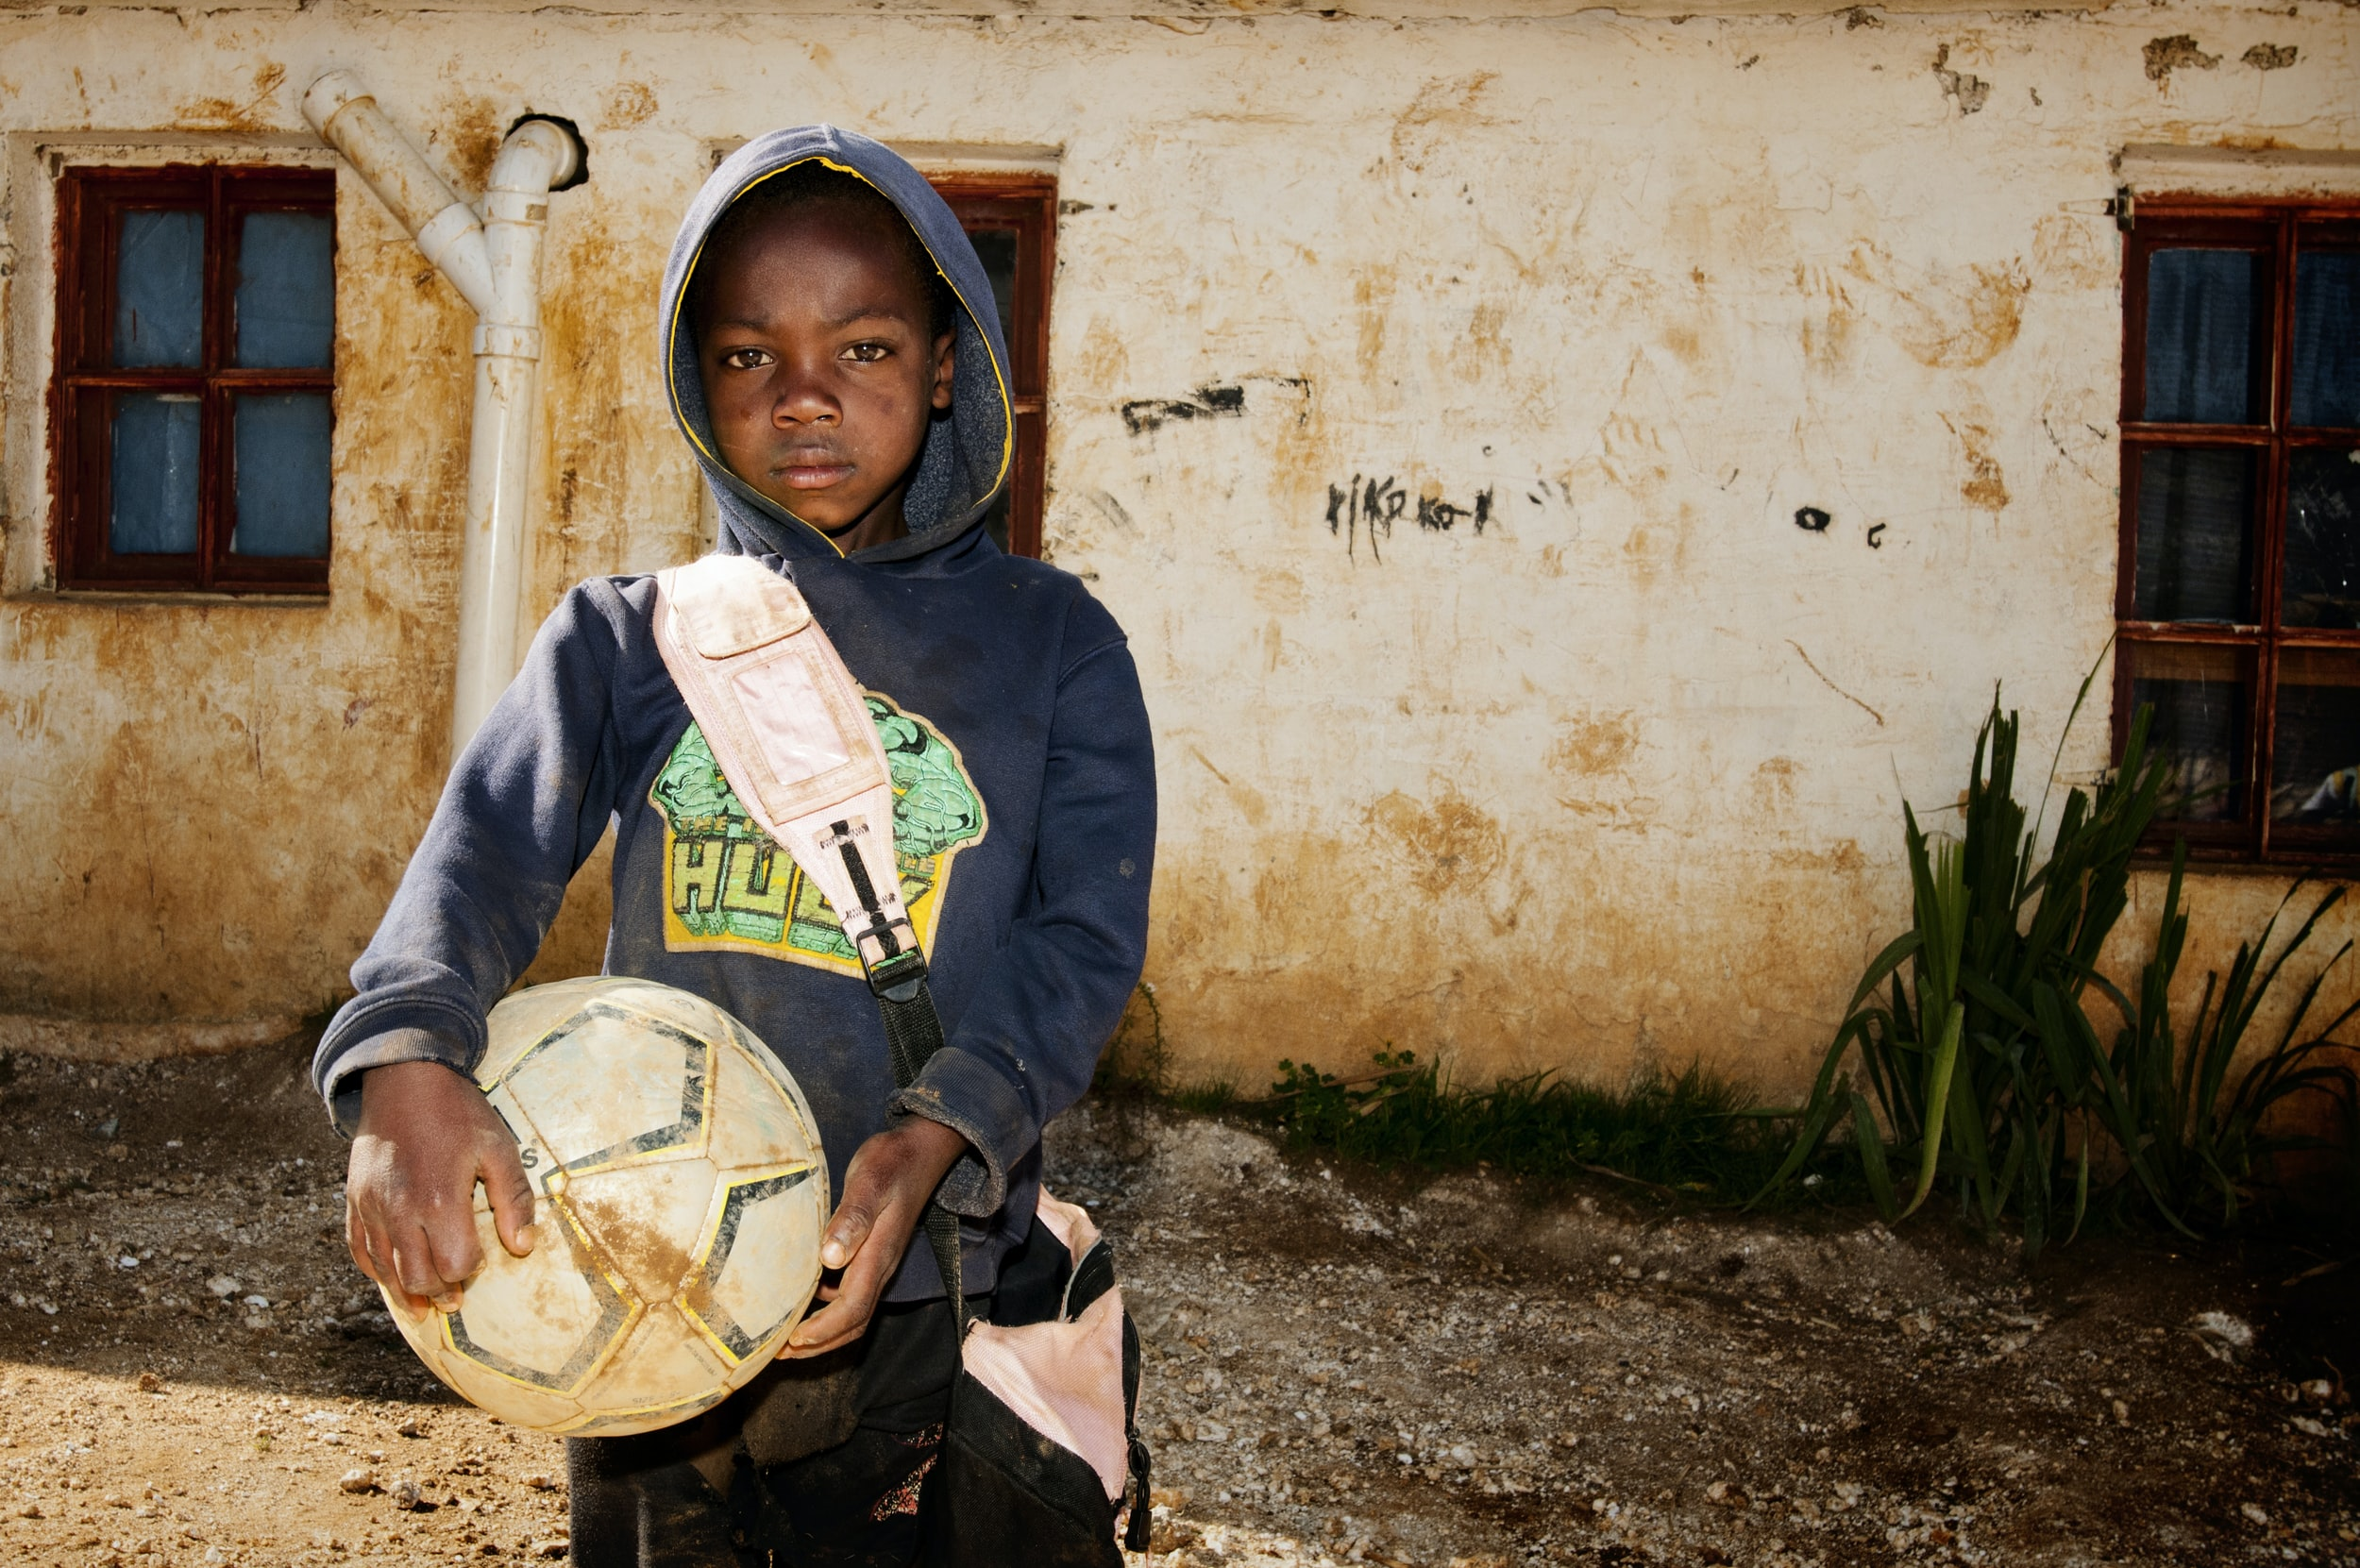 boy holding soccer ball on front of house